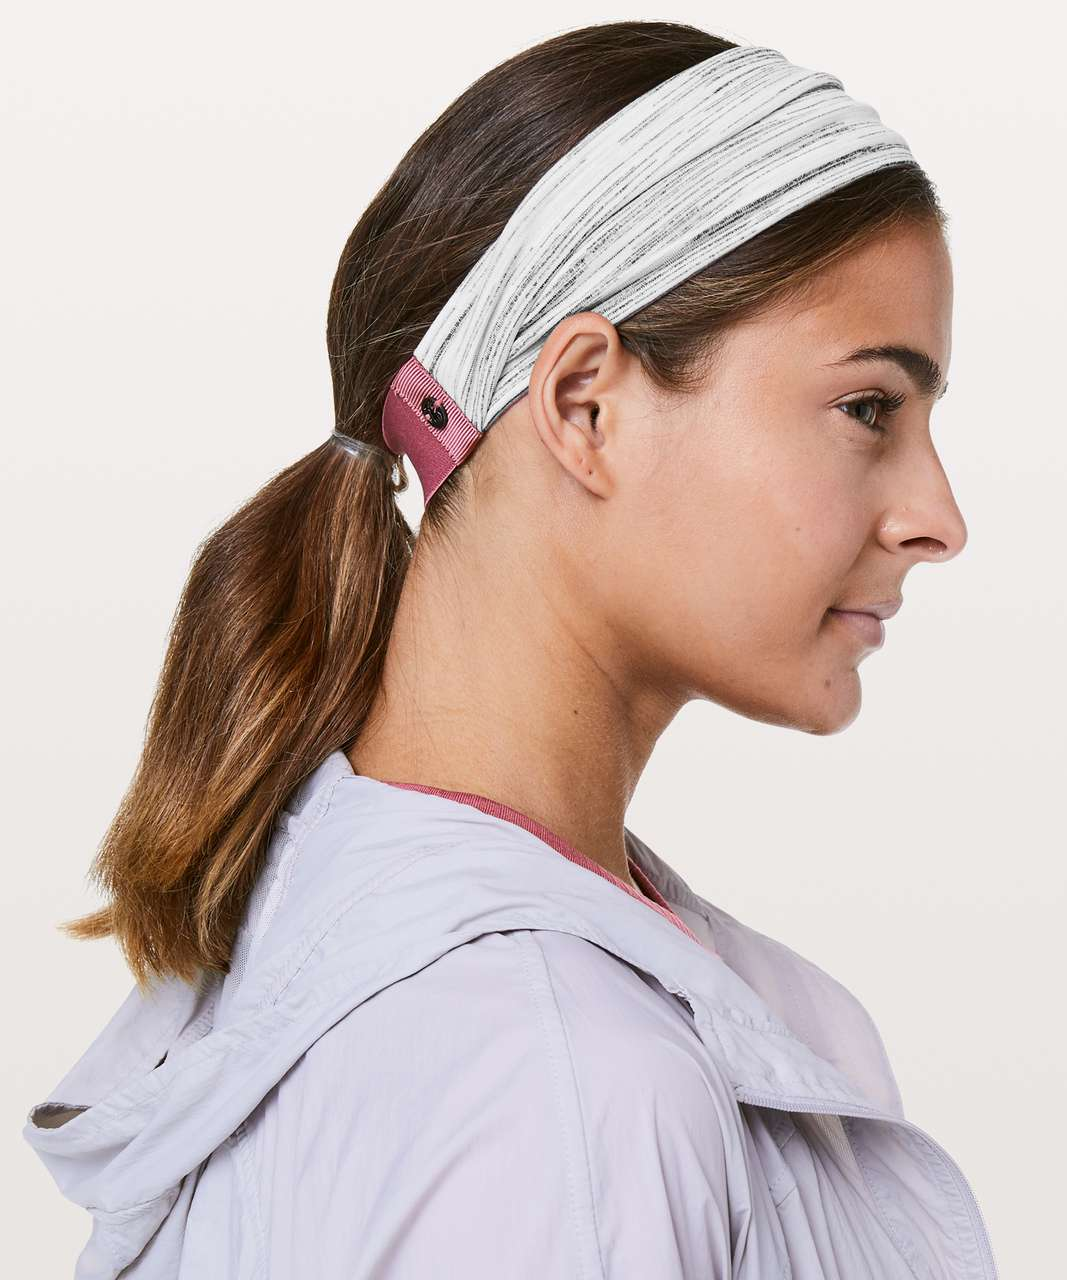 Lululemon Fringe Fighter Headband - Heathered Cherry Tint / Space Dye Camo White Silver Spoon